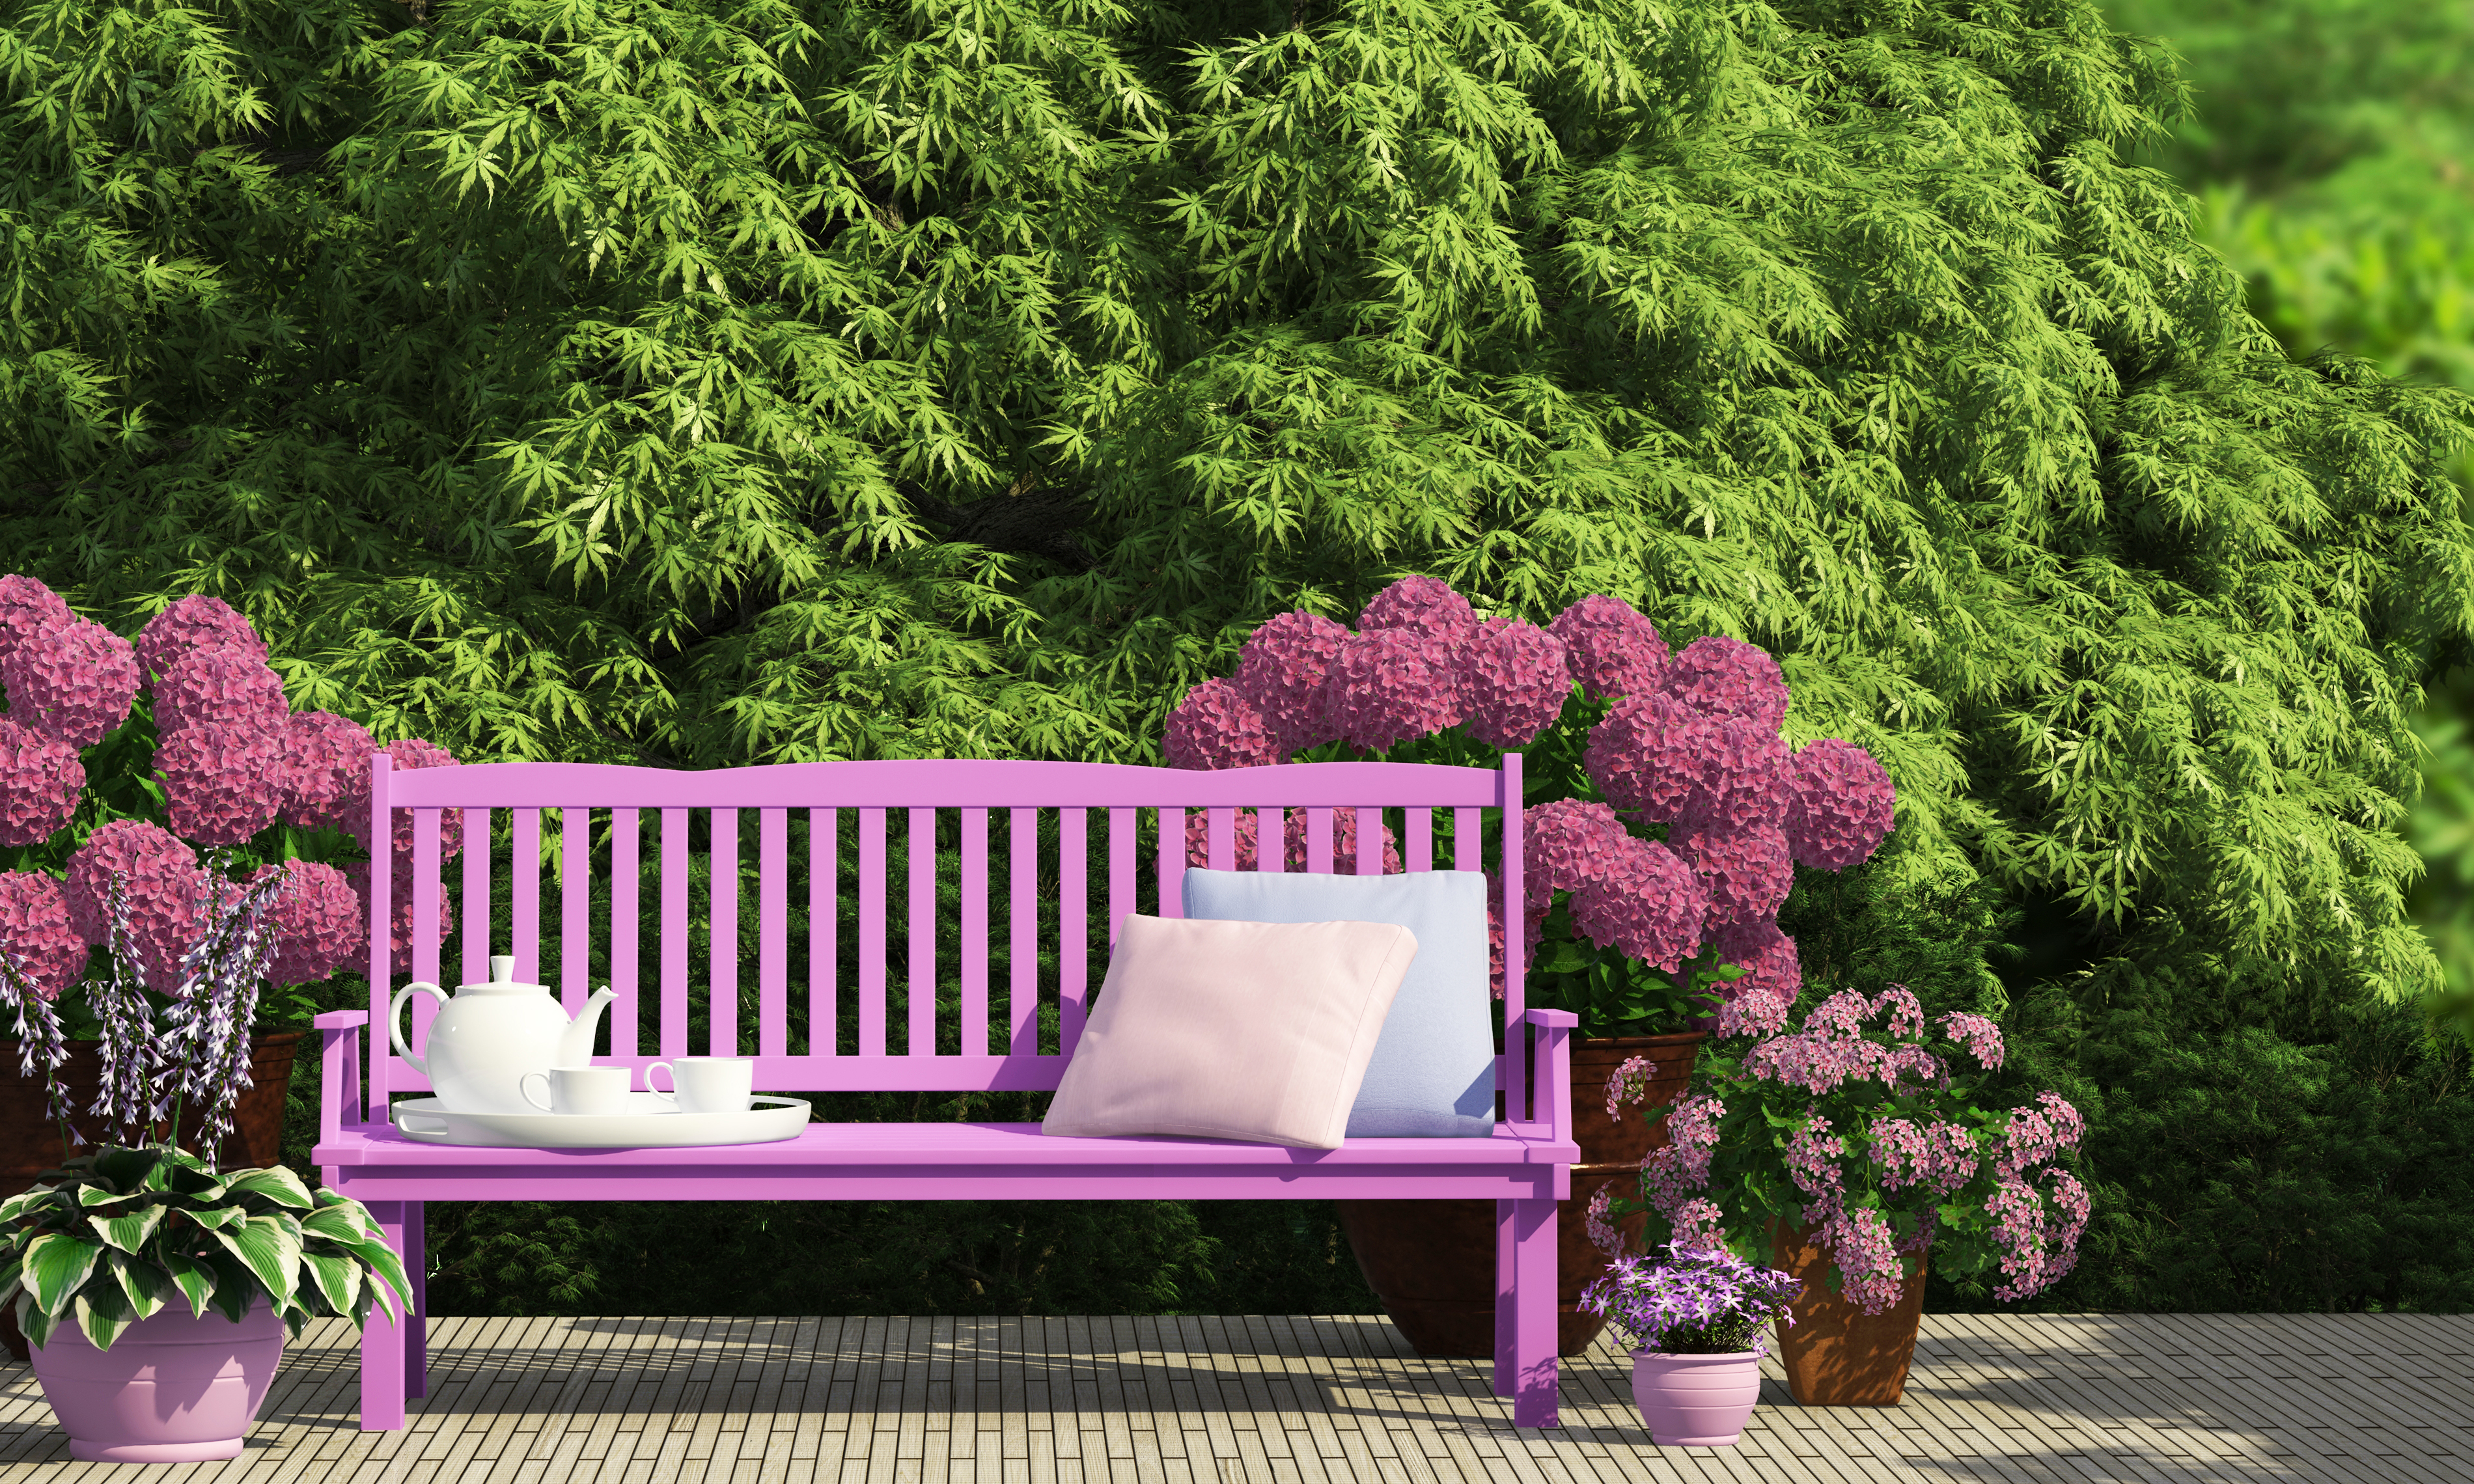 4 Ways to Freshen Up Your Outdoor Space